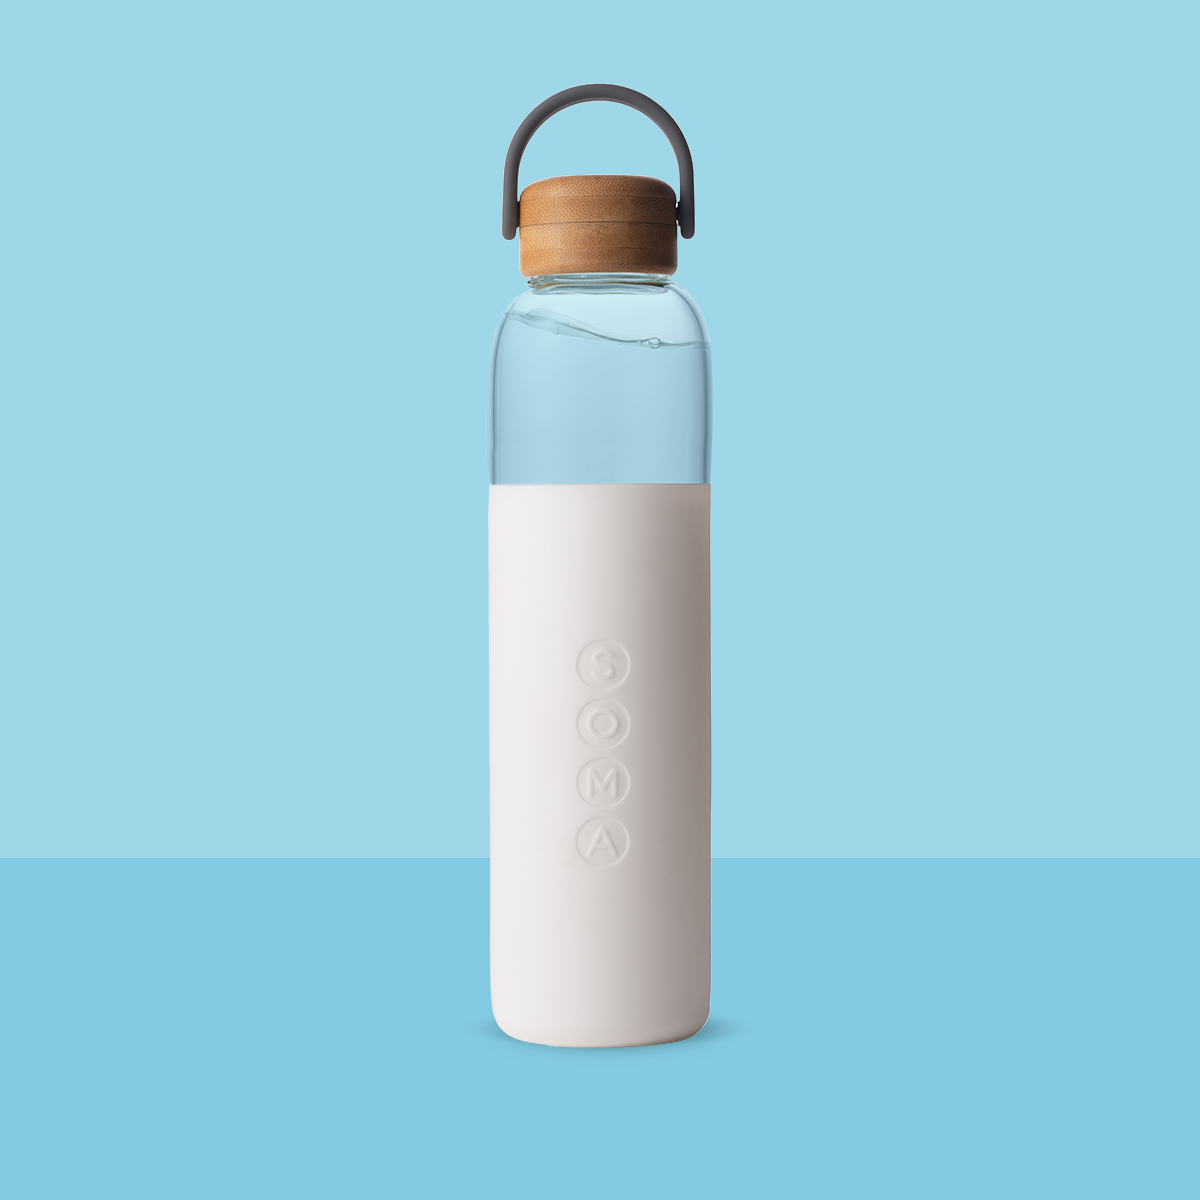 25 oz. Glass Water Bottle